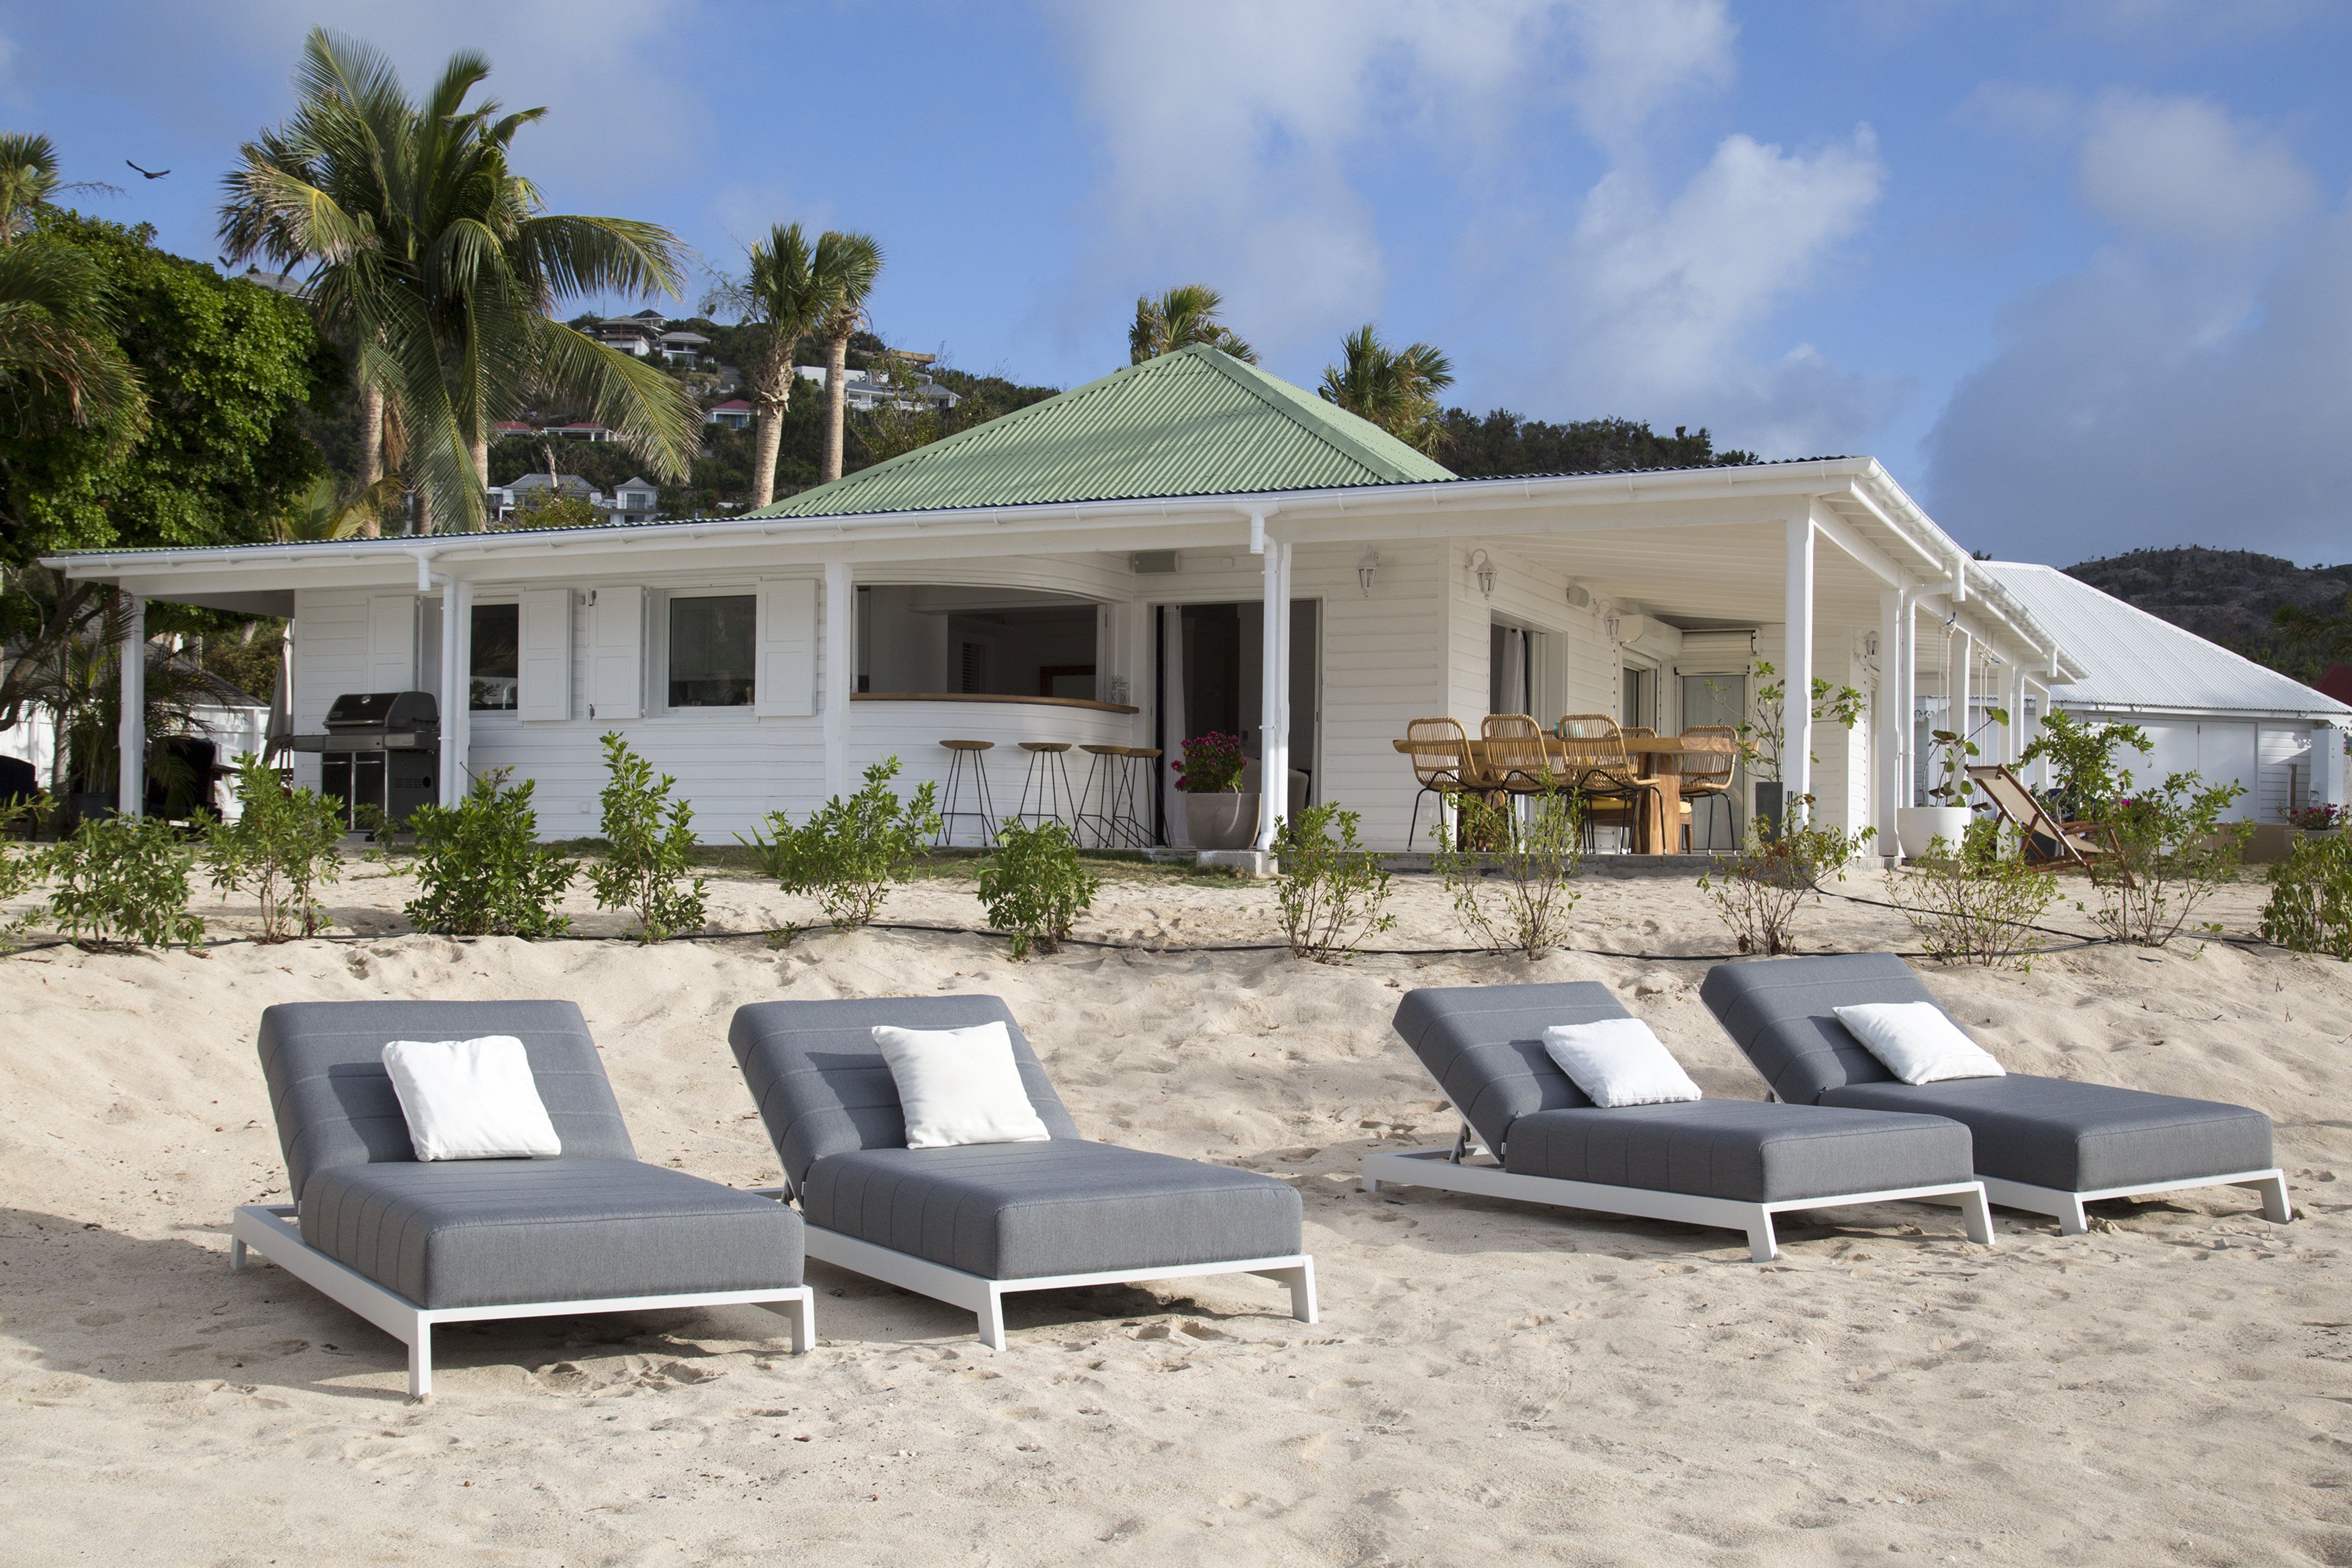 Beach at WIMCO Villa WV VSC (Sand Castle) at Lorient Beach, St. Barthelemy